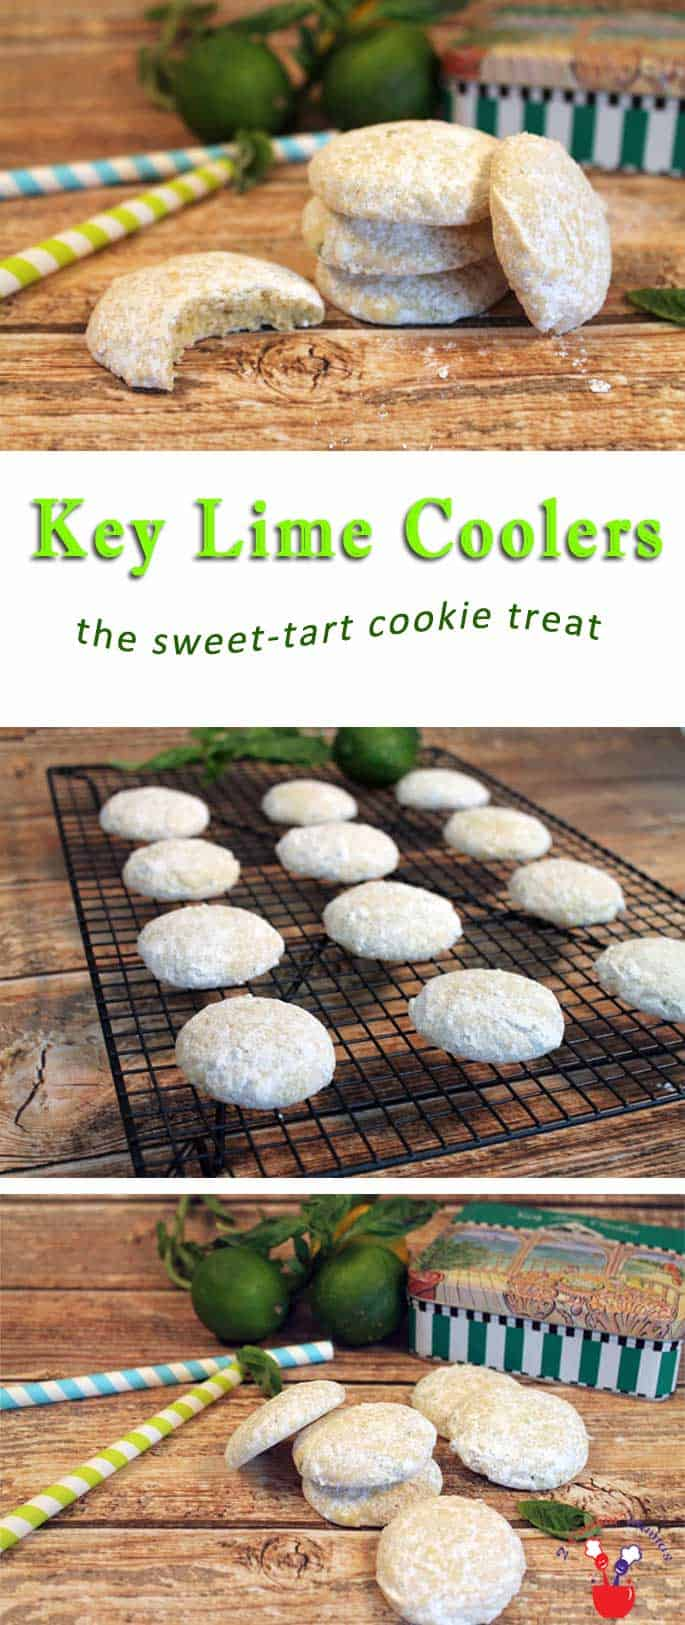 Key Lime Coolers | 2 Cookin Mamas Key Lime Coolers are light sugar-coated cookies, perfect for picnics & after school treats. Adults & kids alike will love the sweet-tart combination!